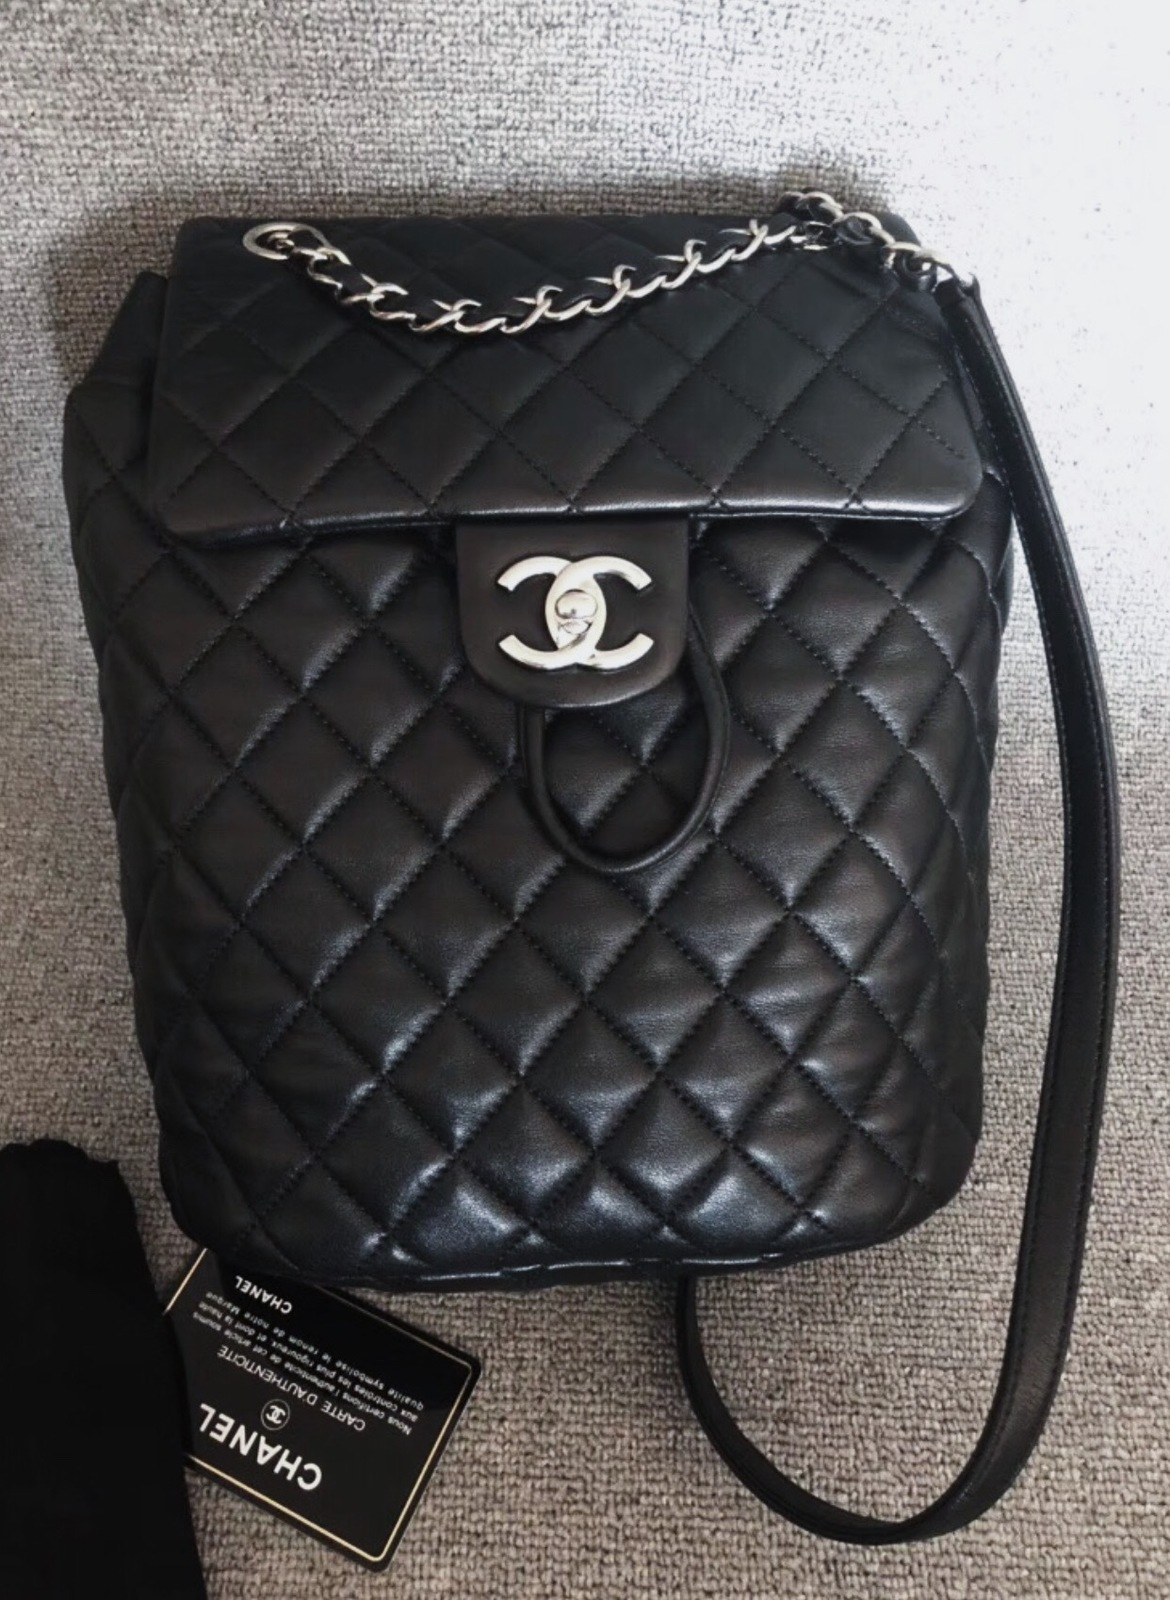 100% AUTHENTIC CHANEL 2017 BLACK QUILTED LAMBSKIN URBAN SPIRIT BACKPACK SHW